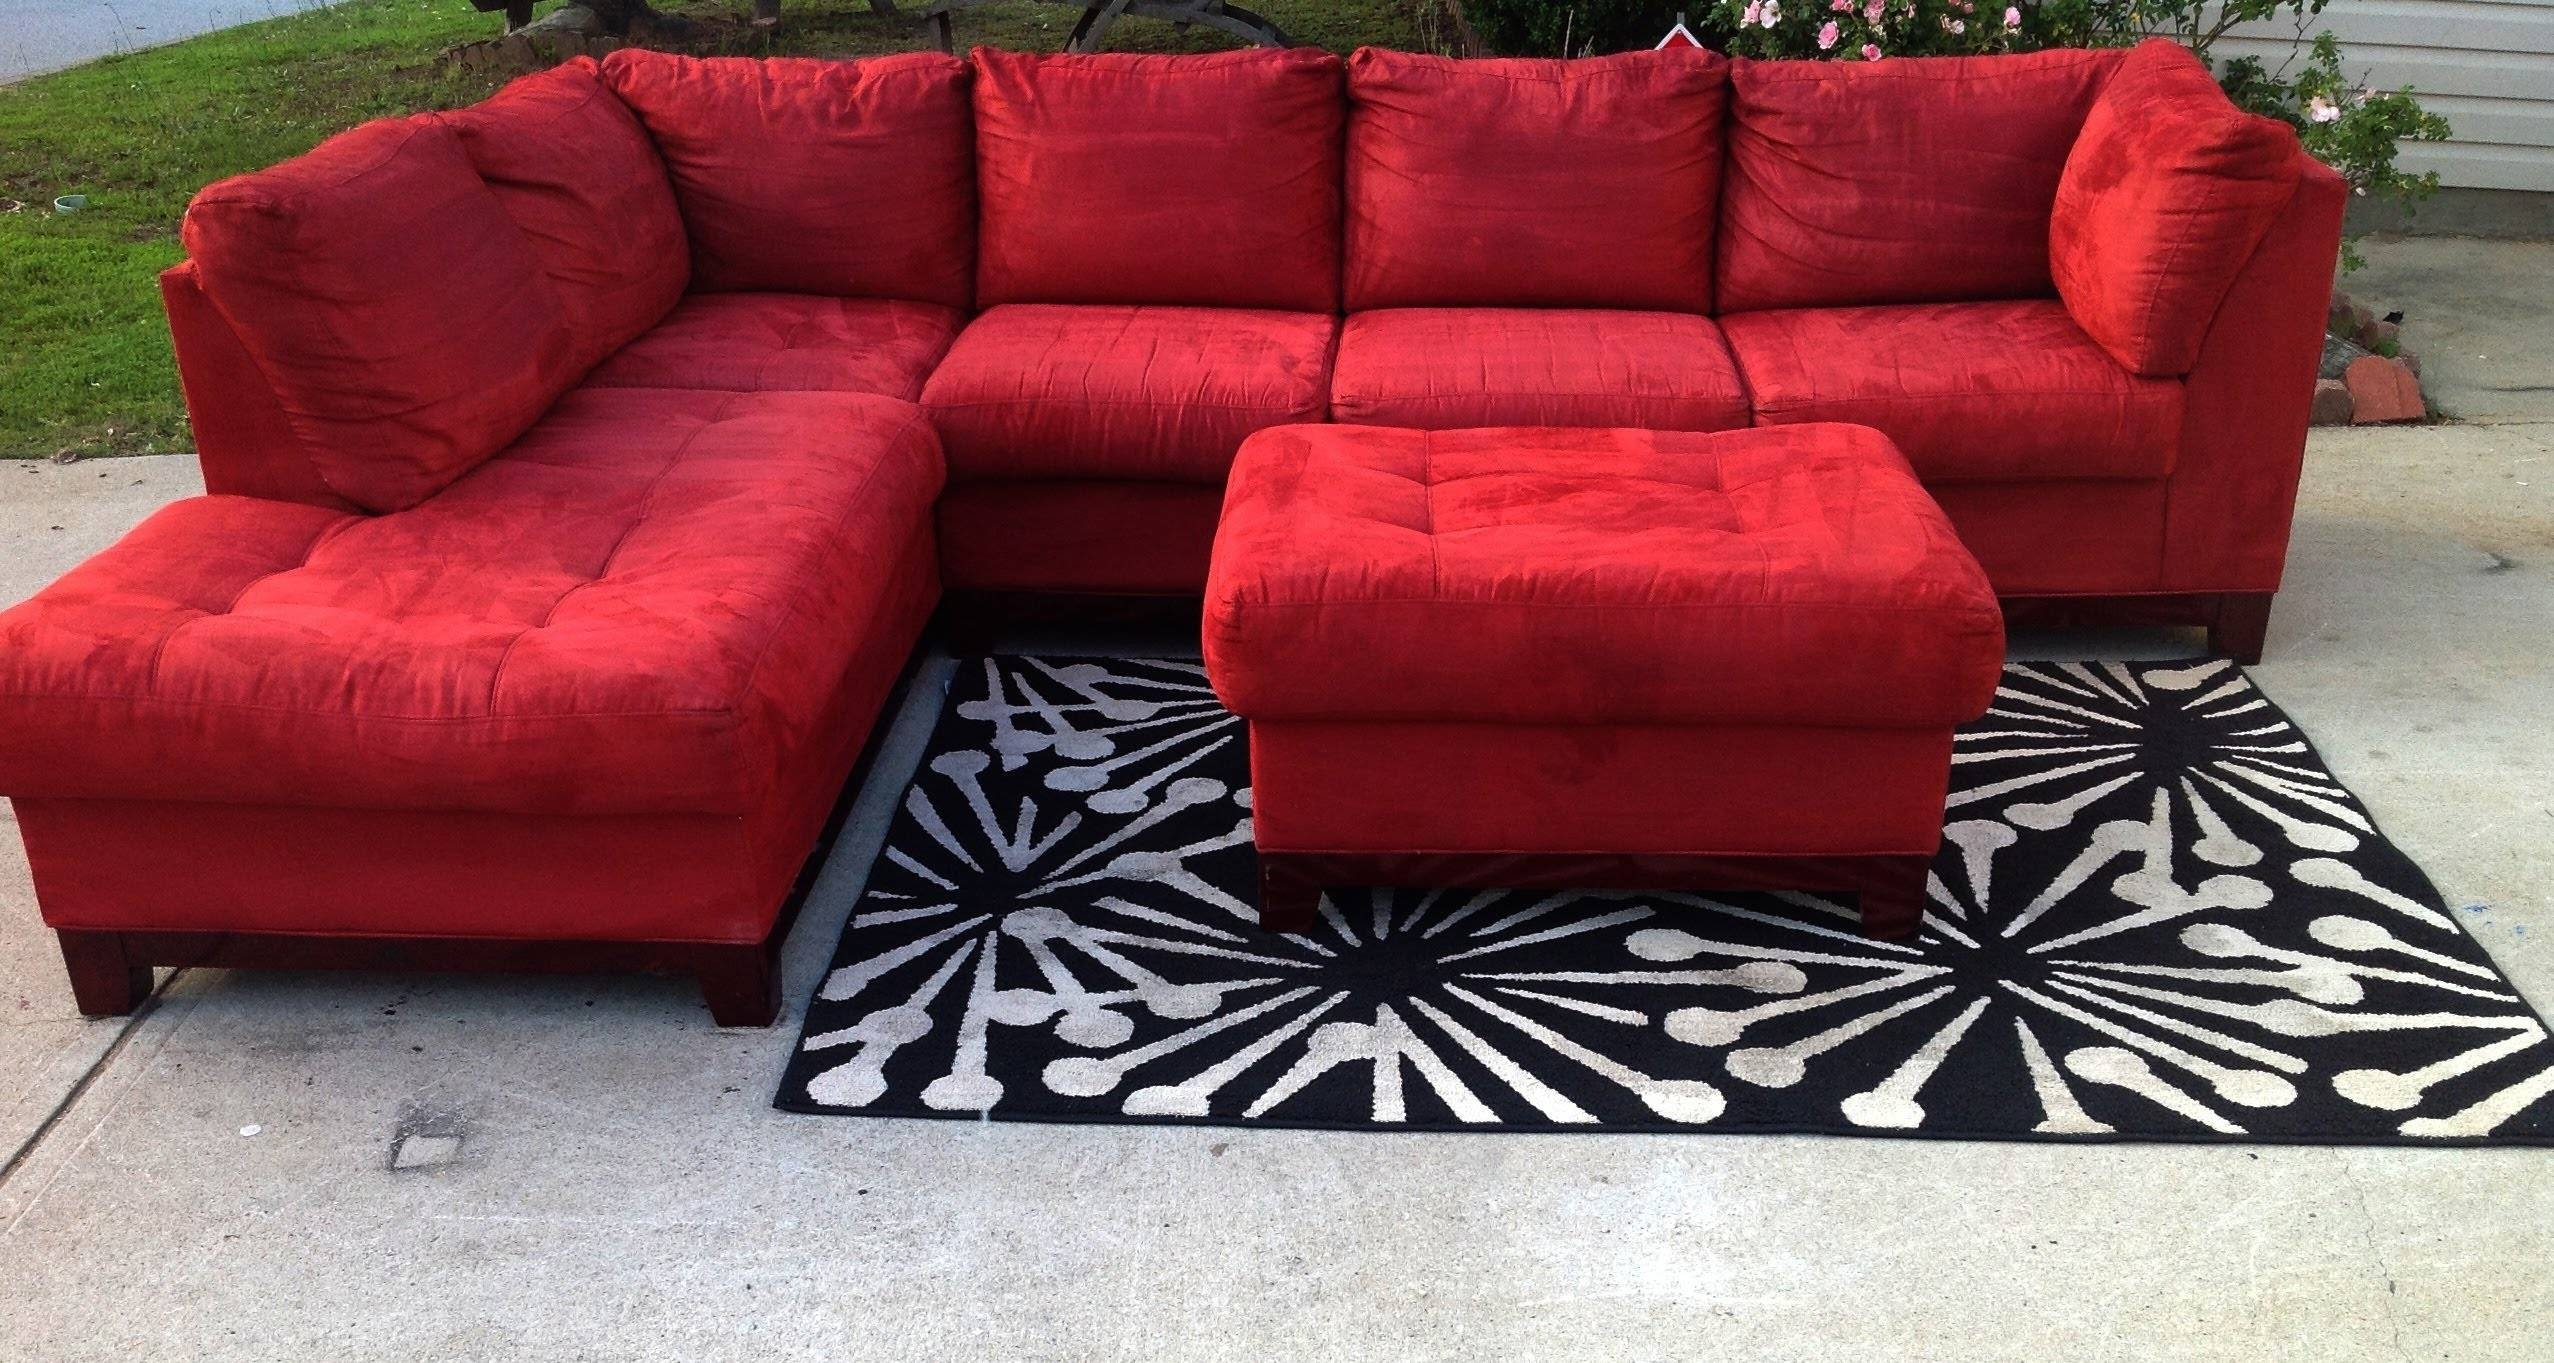 Furniture Cindy Crawford Sectional Sofa For Elegant Living Room in Cindy Crawford Furniture Sectional Sofas : cindy crawford sectional couch - Sectionals, Sofas & Couches